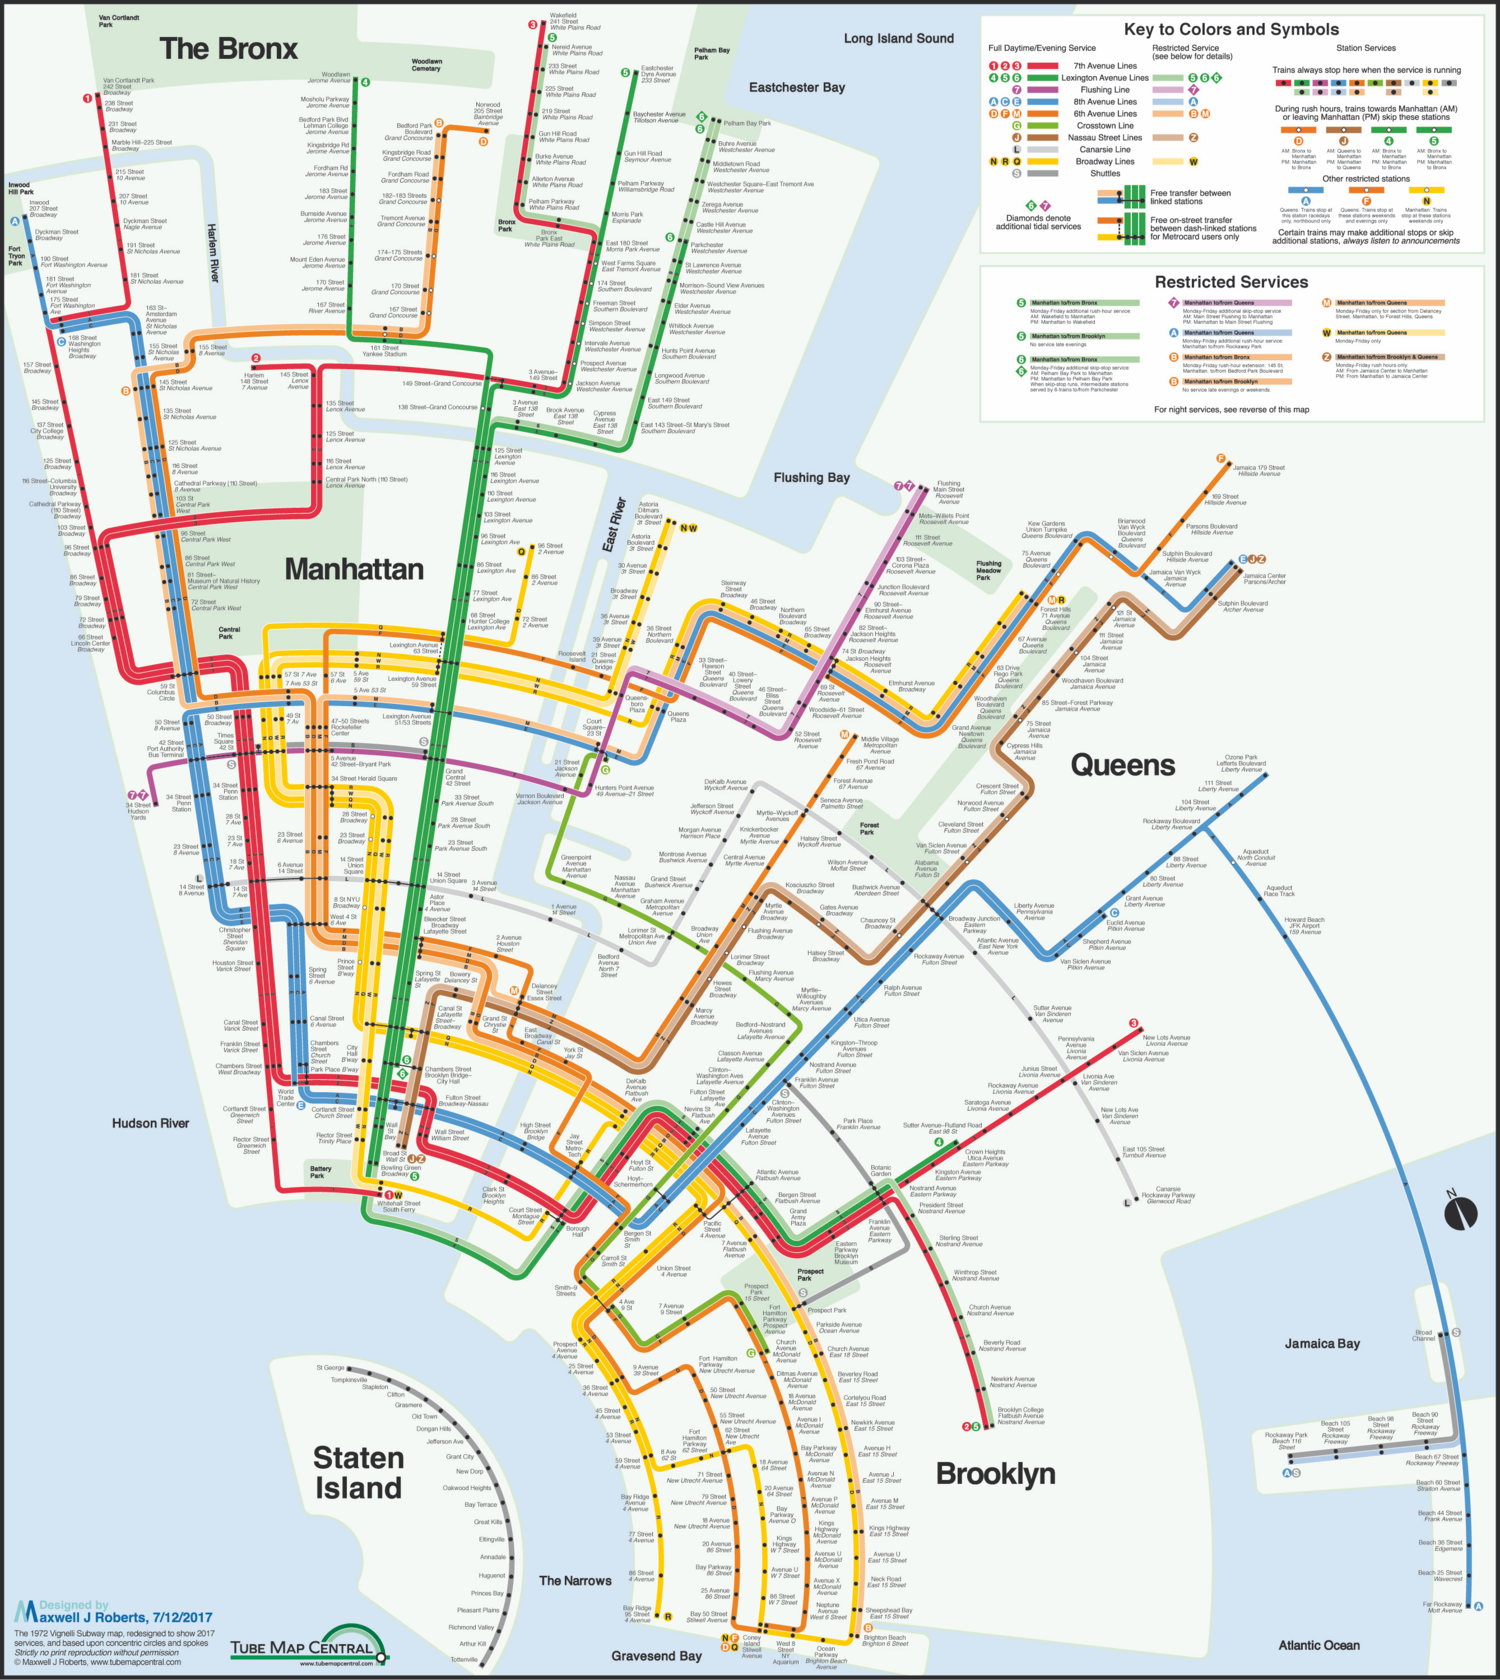 New York And Subway Map.Nyc Subway Map Massimo Vignelli Style Nyc